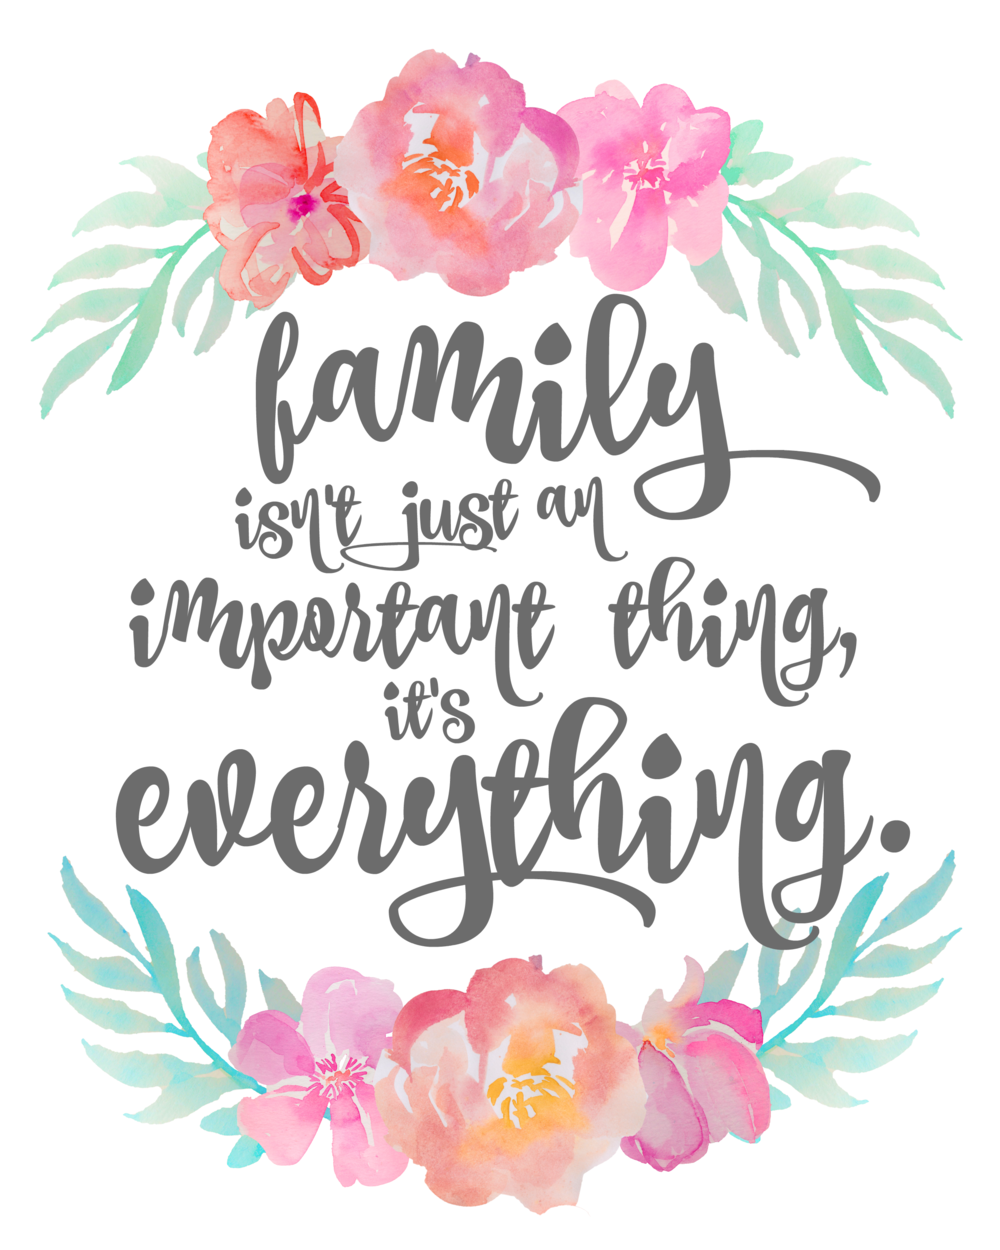 Love Family Quotes Amazing Family First  Pinterest  General Conference Quotes General